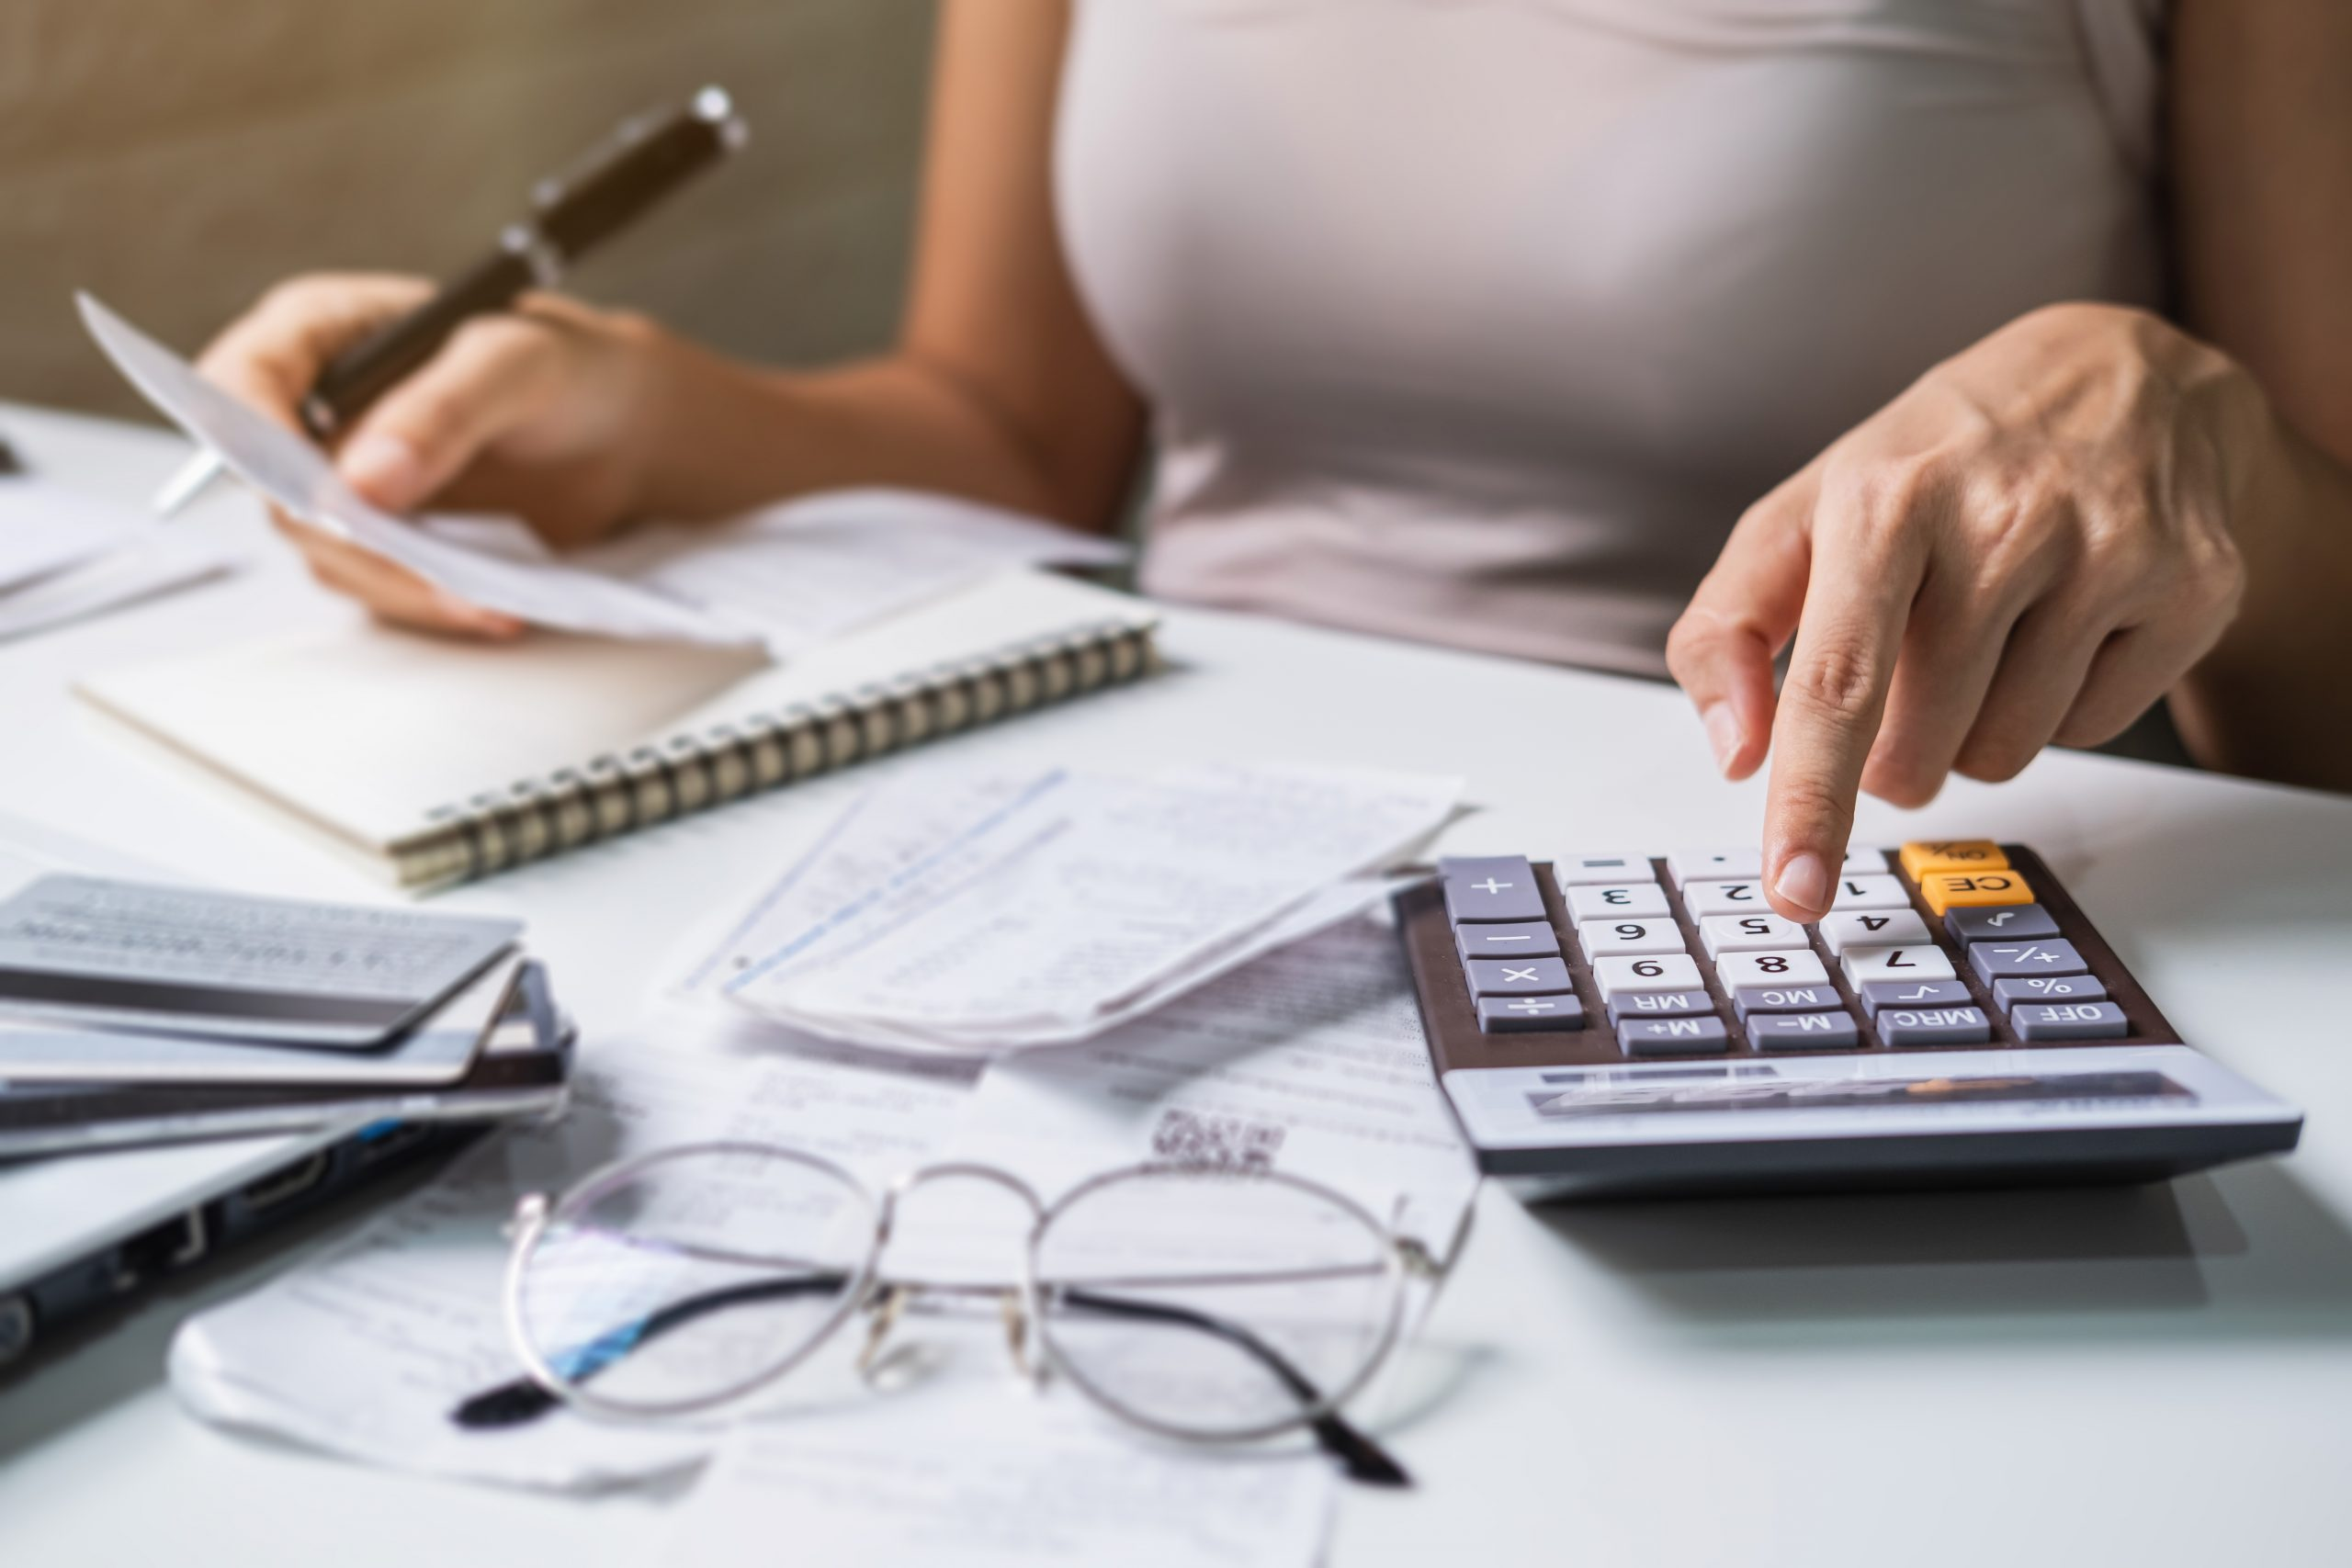 Form 2210: Penalty for Underpaying Taxes